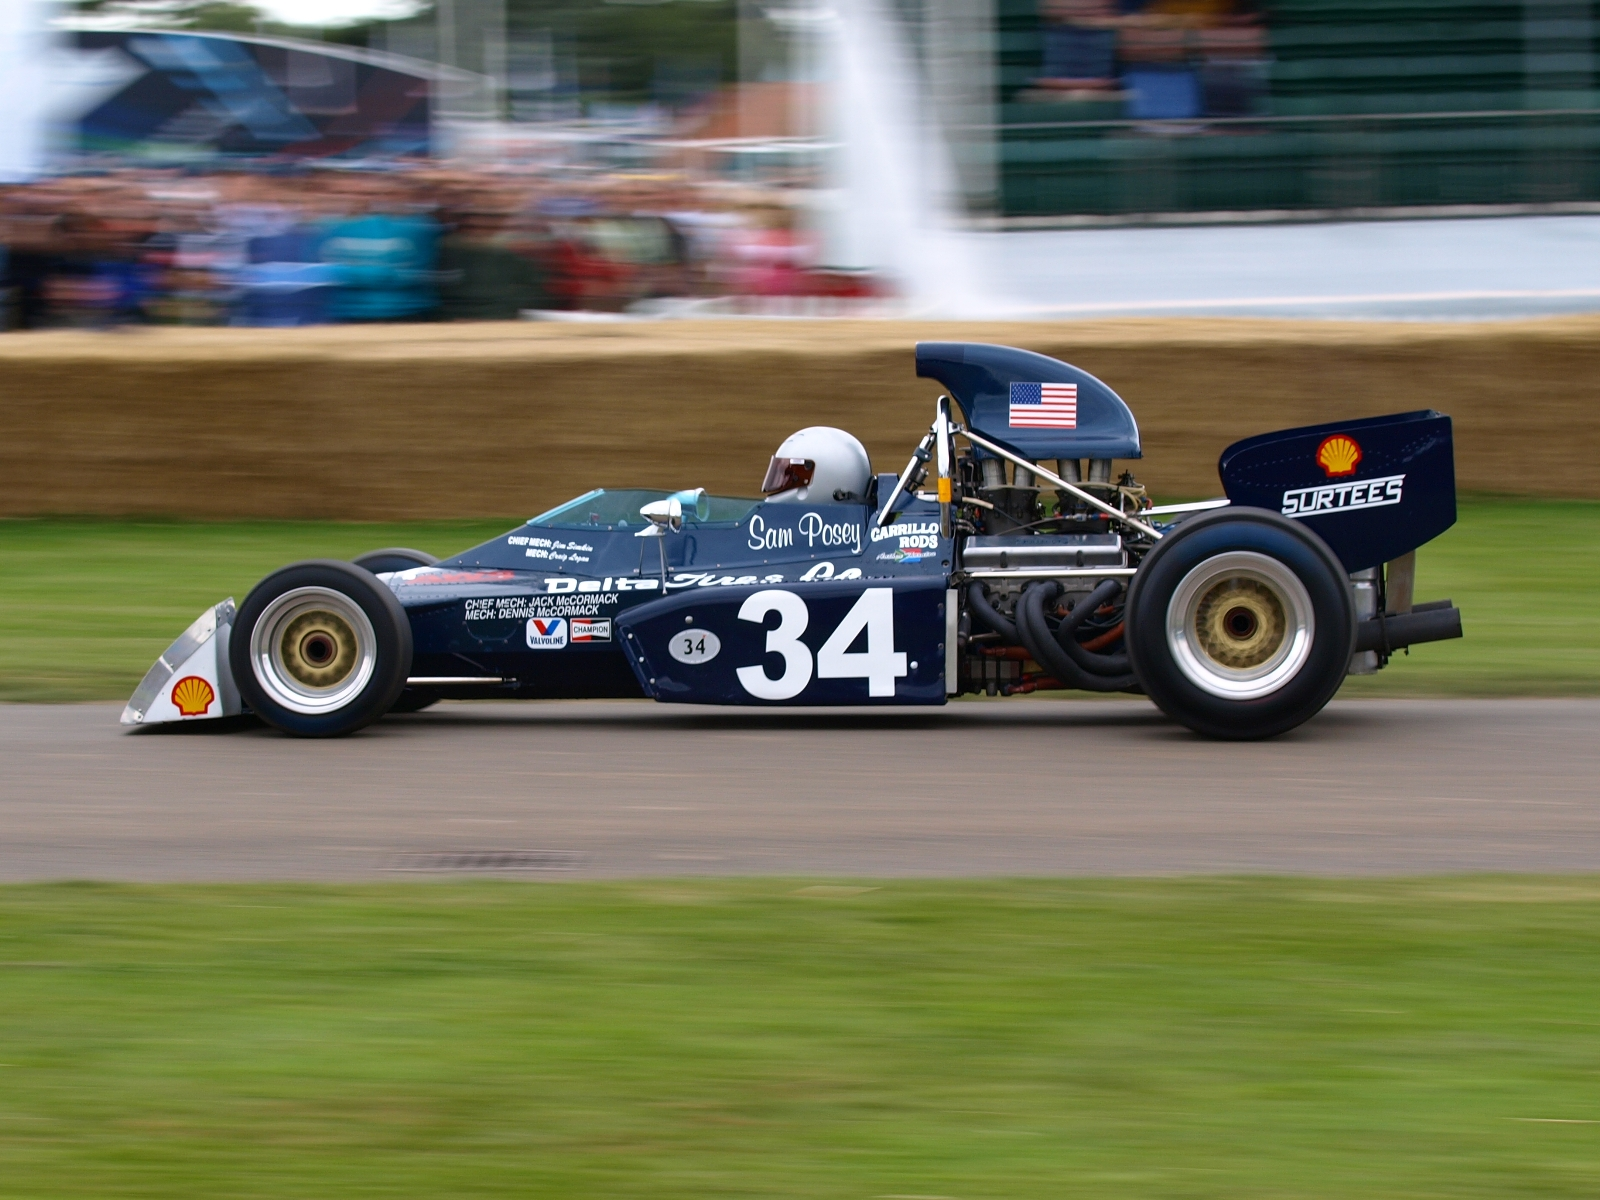 Surtees ts9b photo - 2